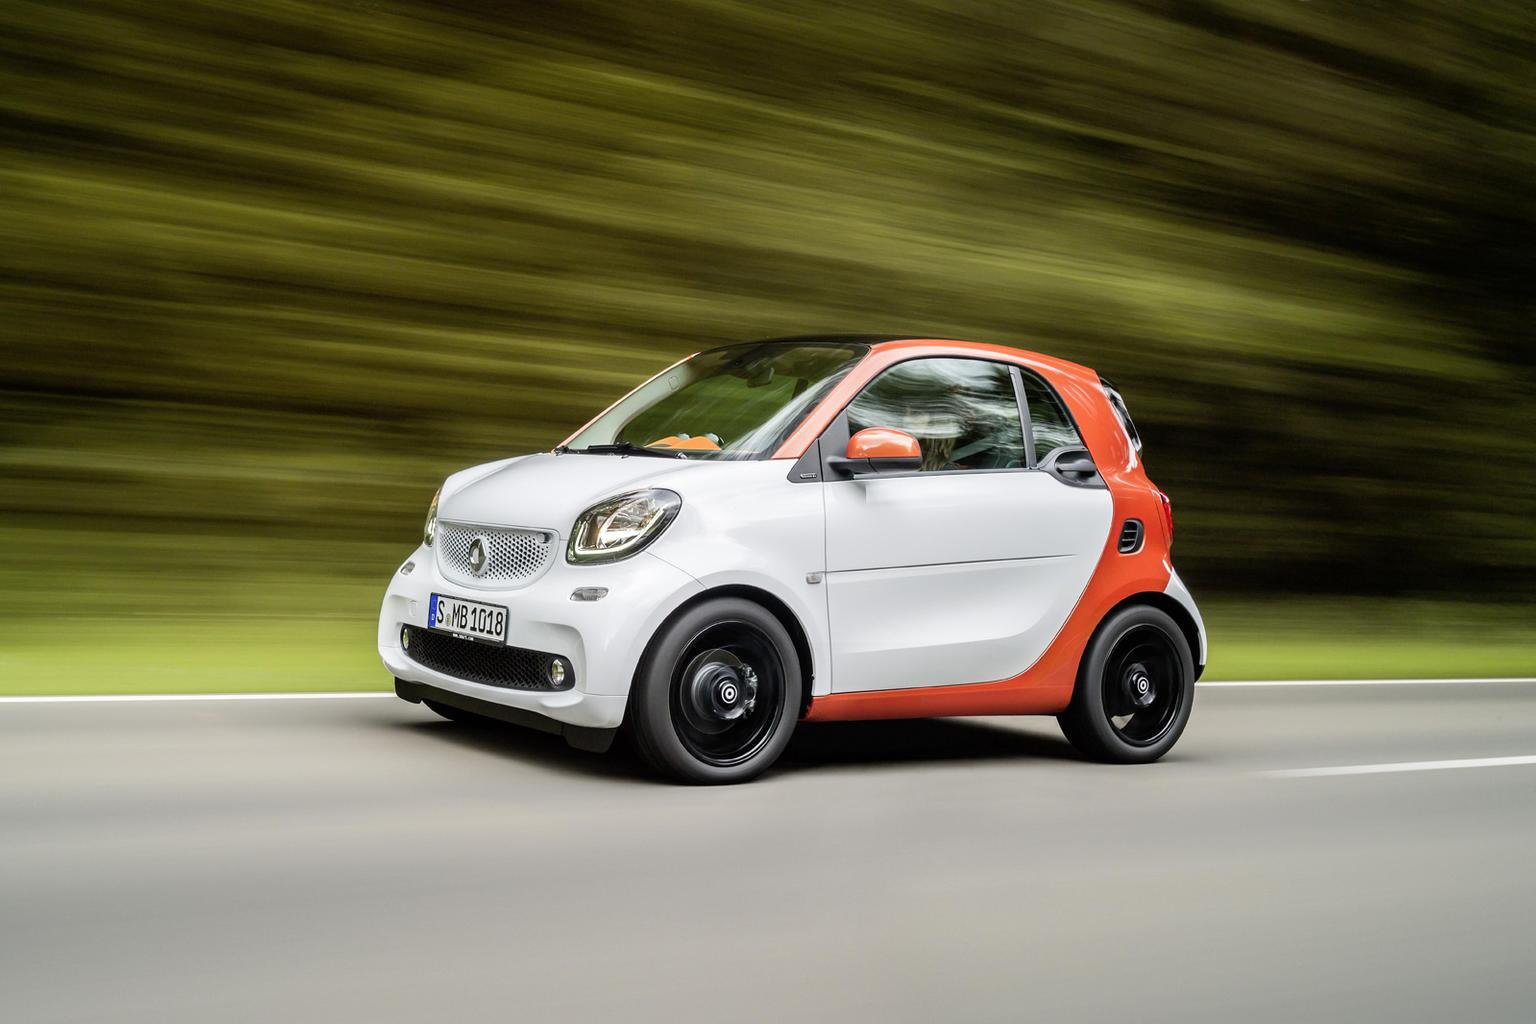 2015 Smart Fortwo - specs, prices and on-sale date